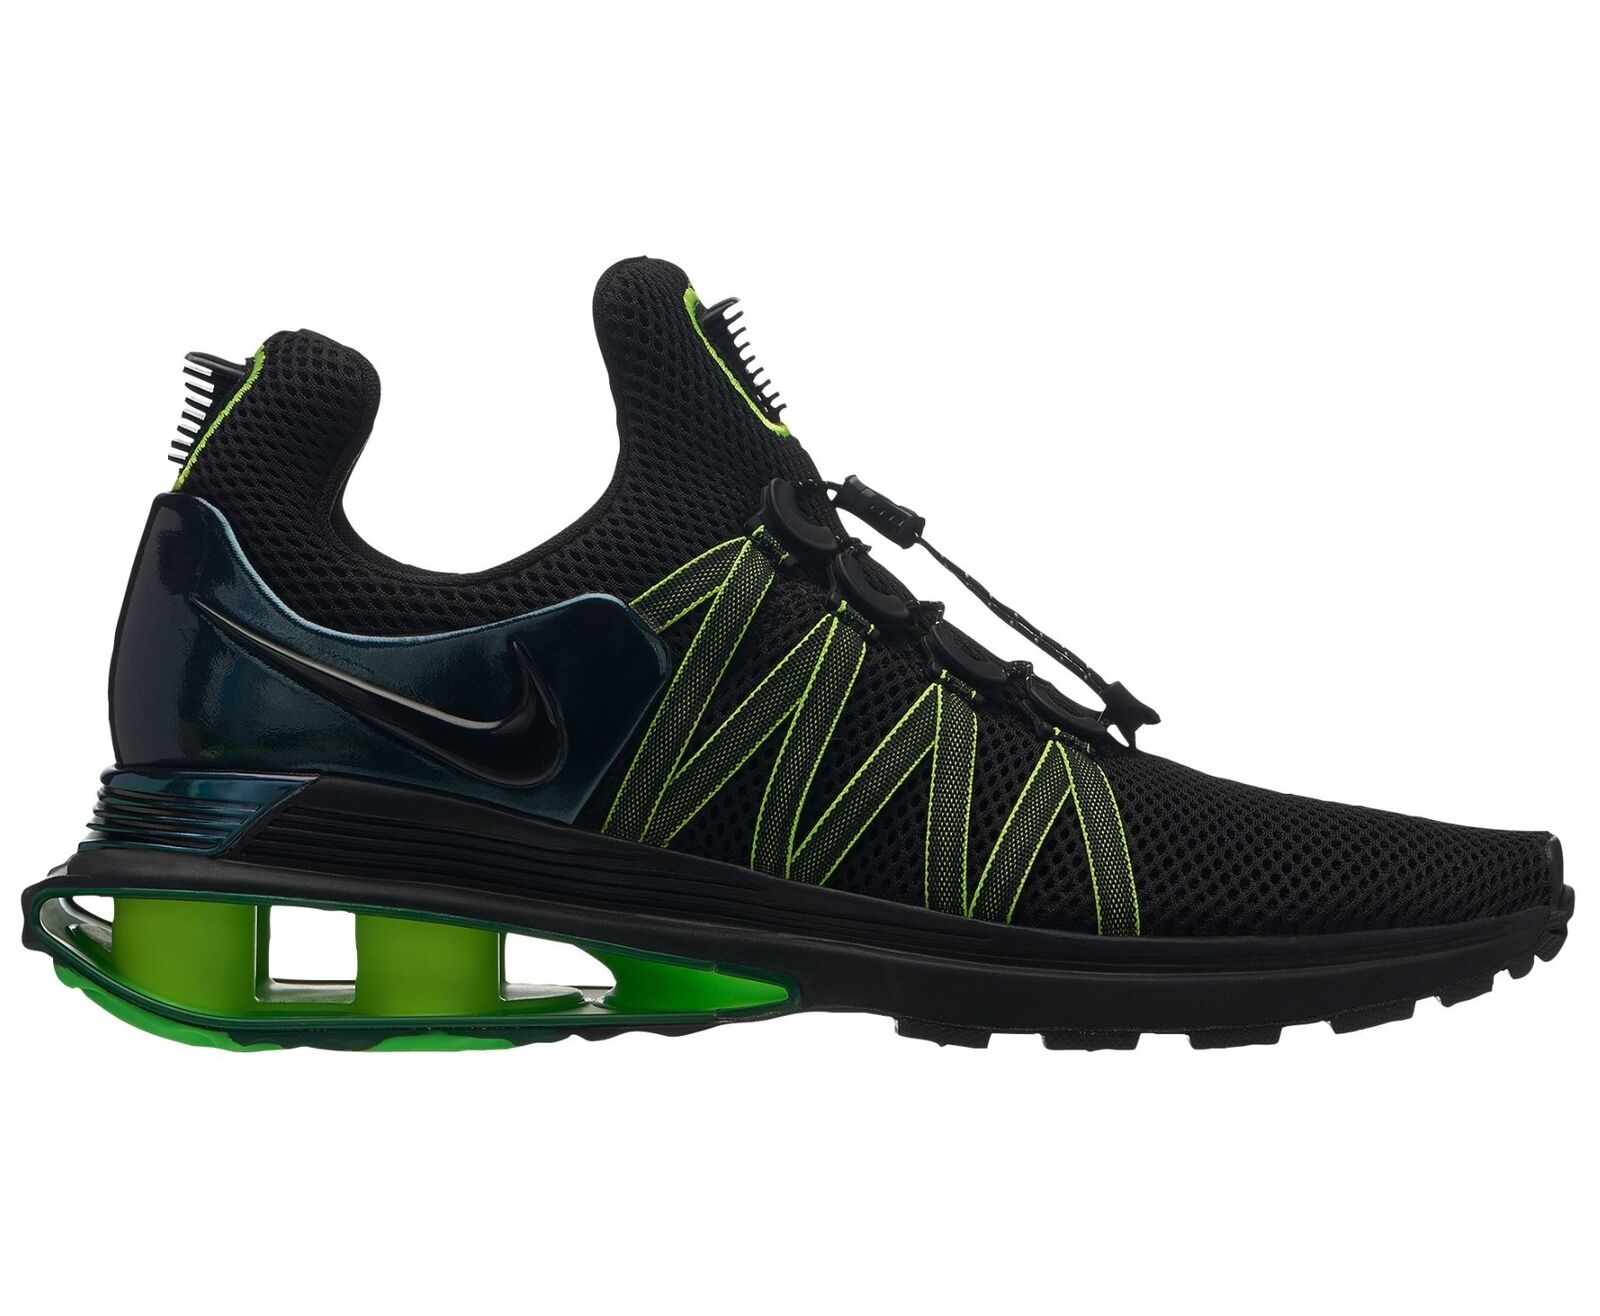 Nike Shox Gravity Mens AR1999-003 Black Gorge Green Lime Running shoes Size 8.5